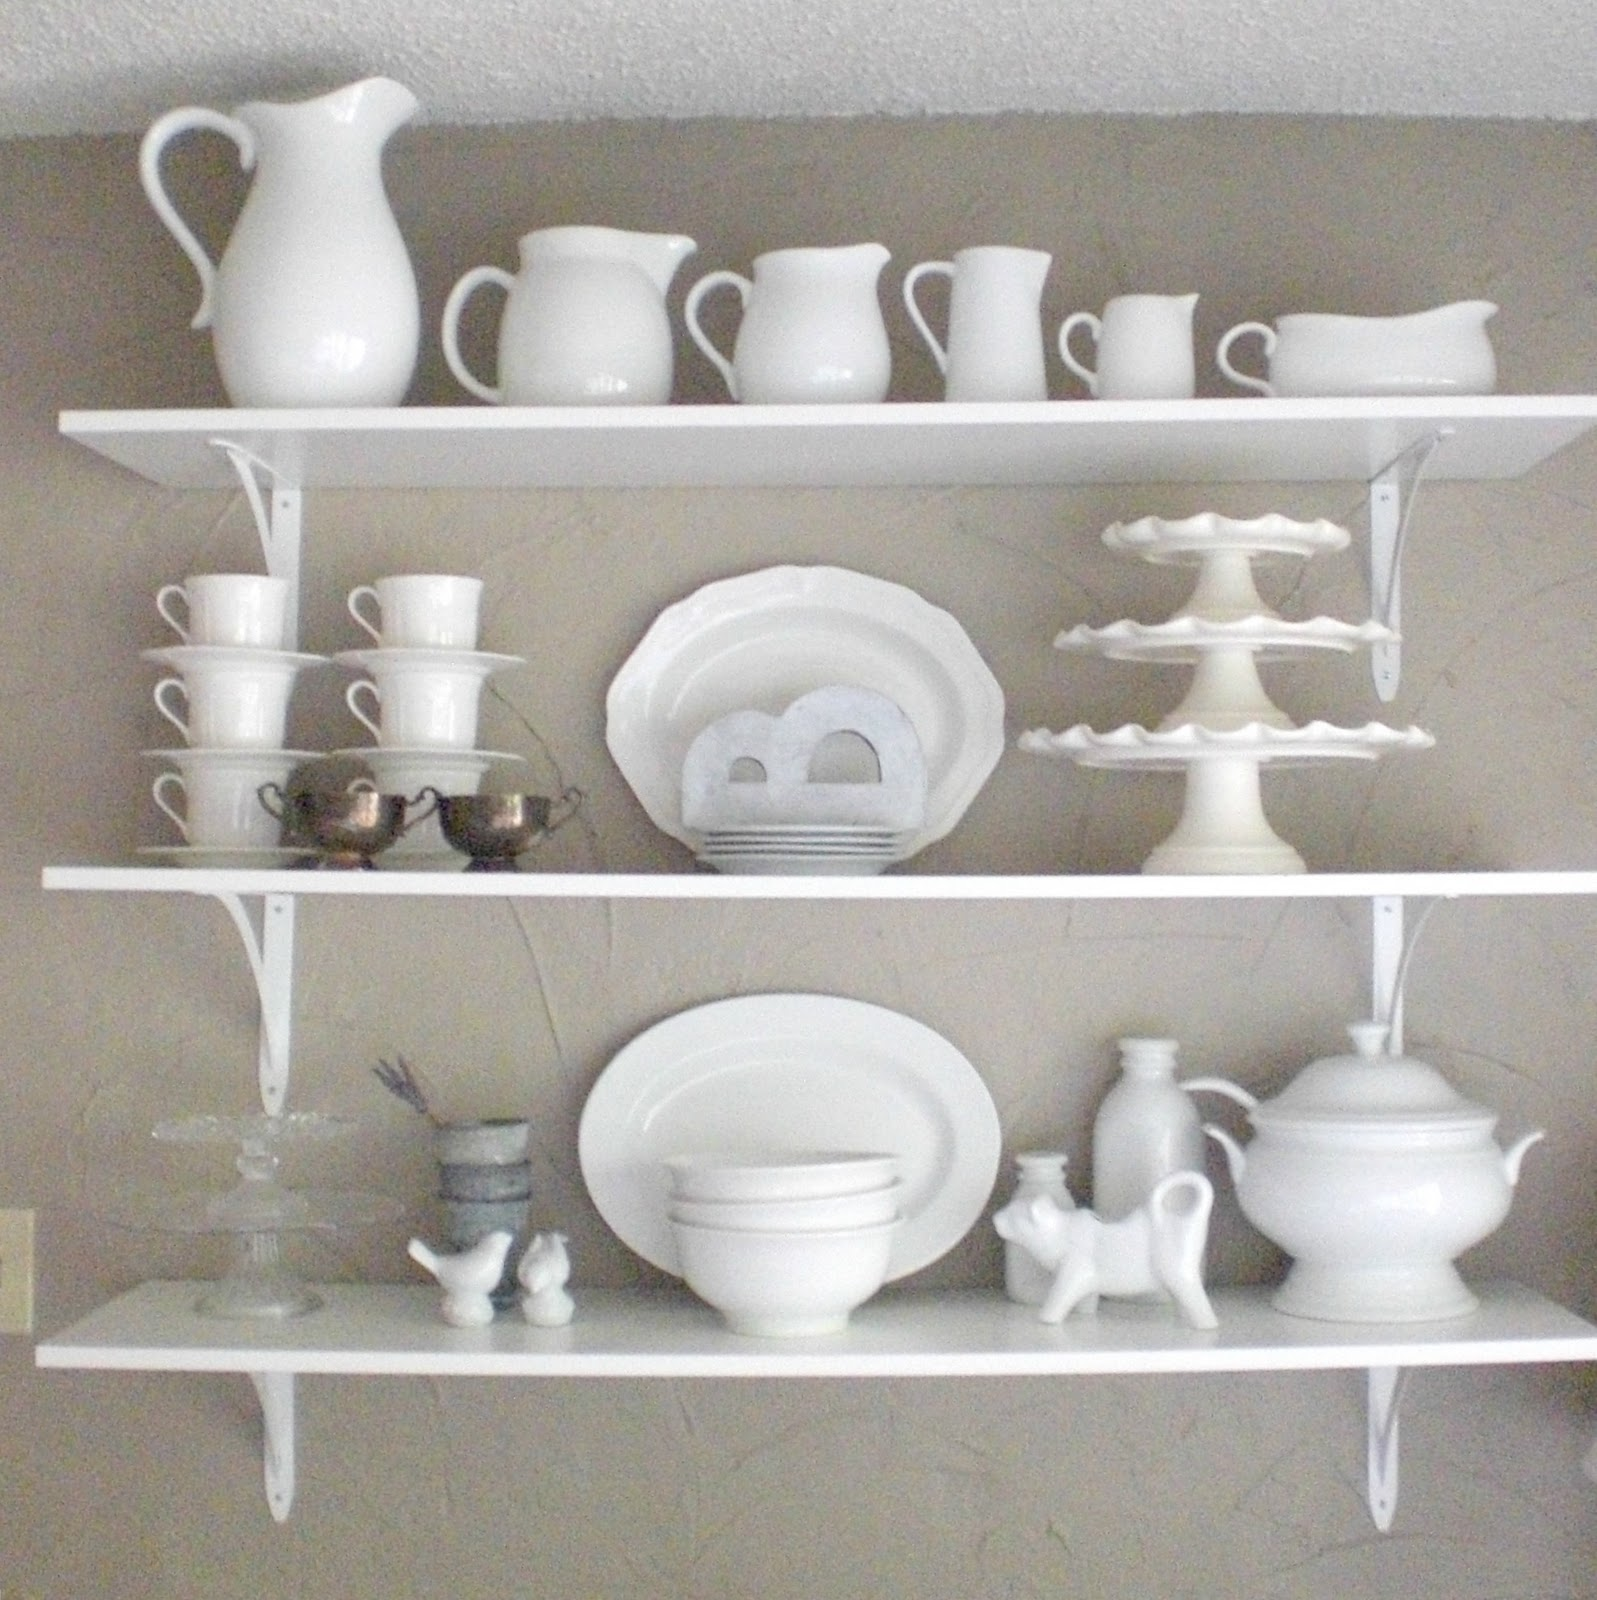 12th and White Kitchen Shelves